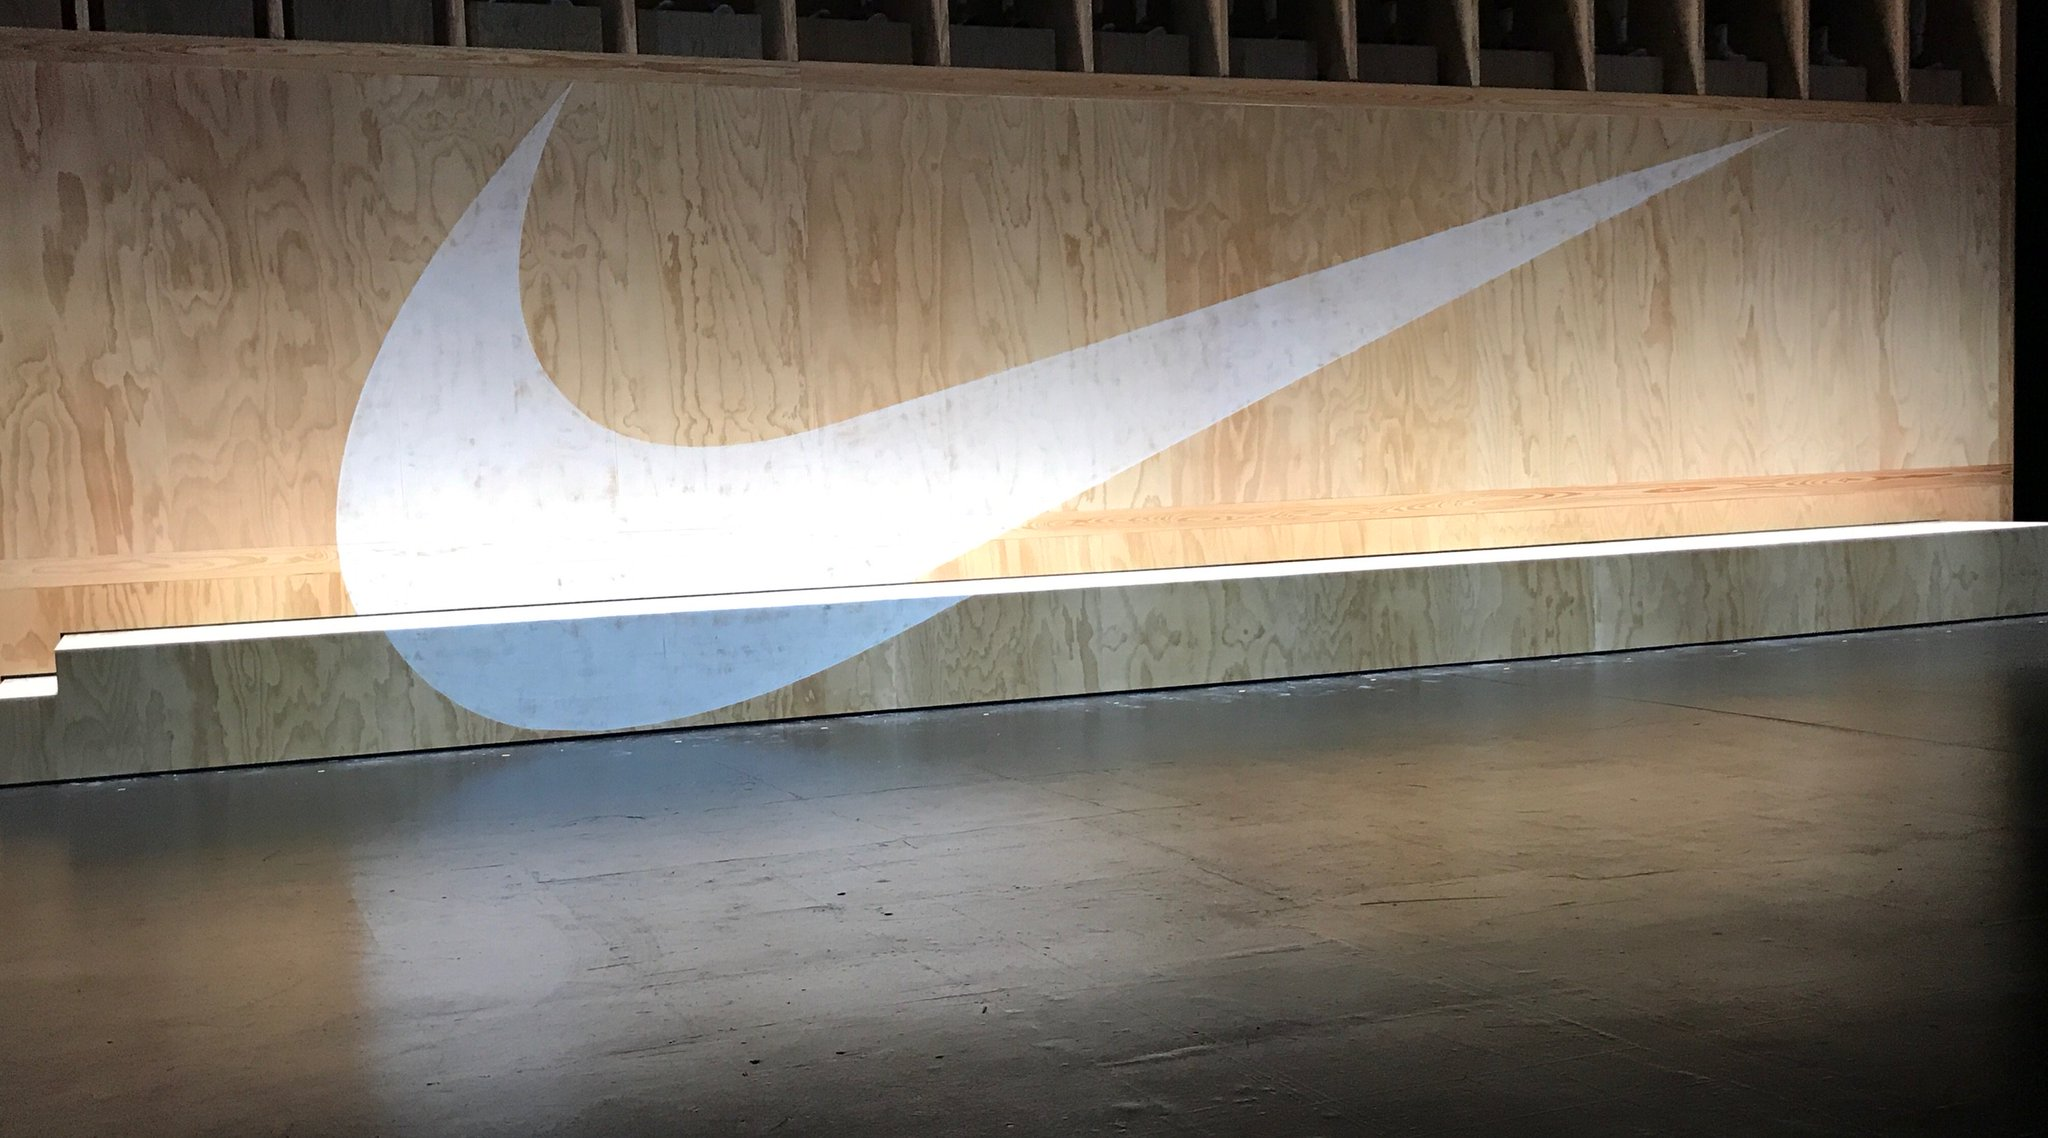 Stay tuned for a special #NIKExNBA launch event - LIVE 9pm/et on @NBATV! https://t.co/twHQgacifI